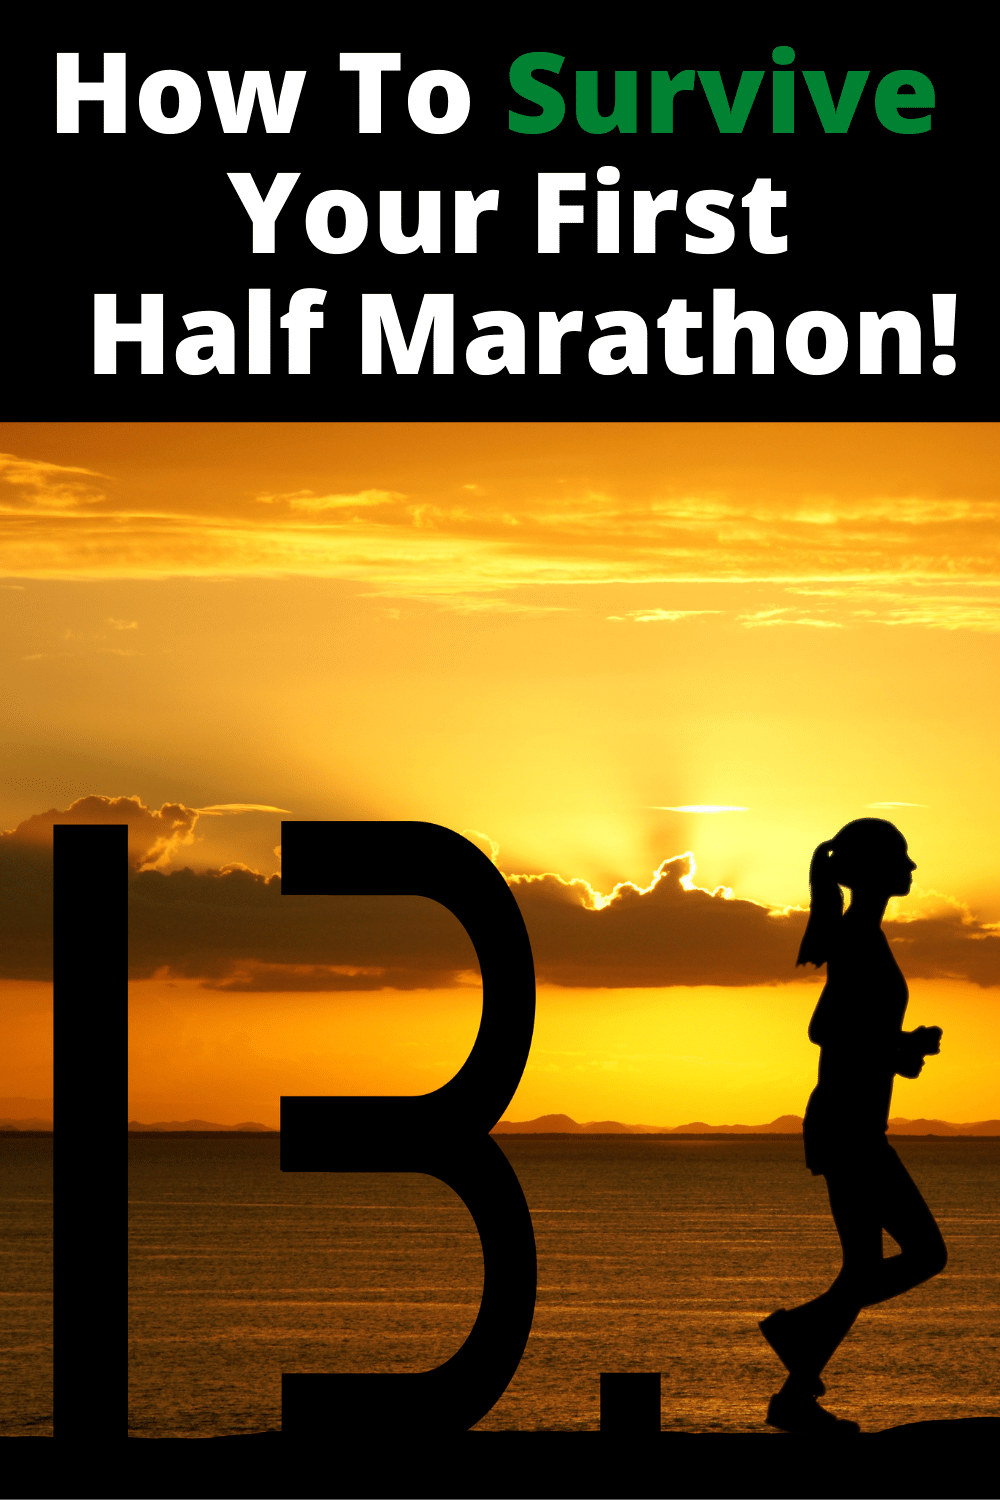 21 Tips To Help Ensure You Survive Your First Half Marathon Race!